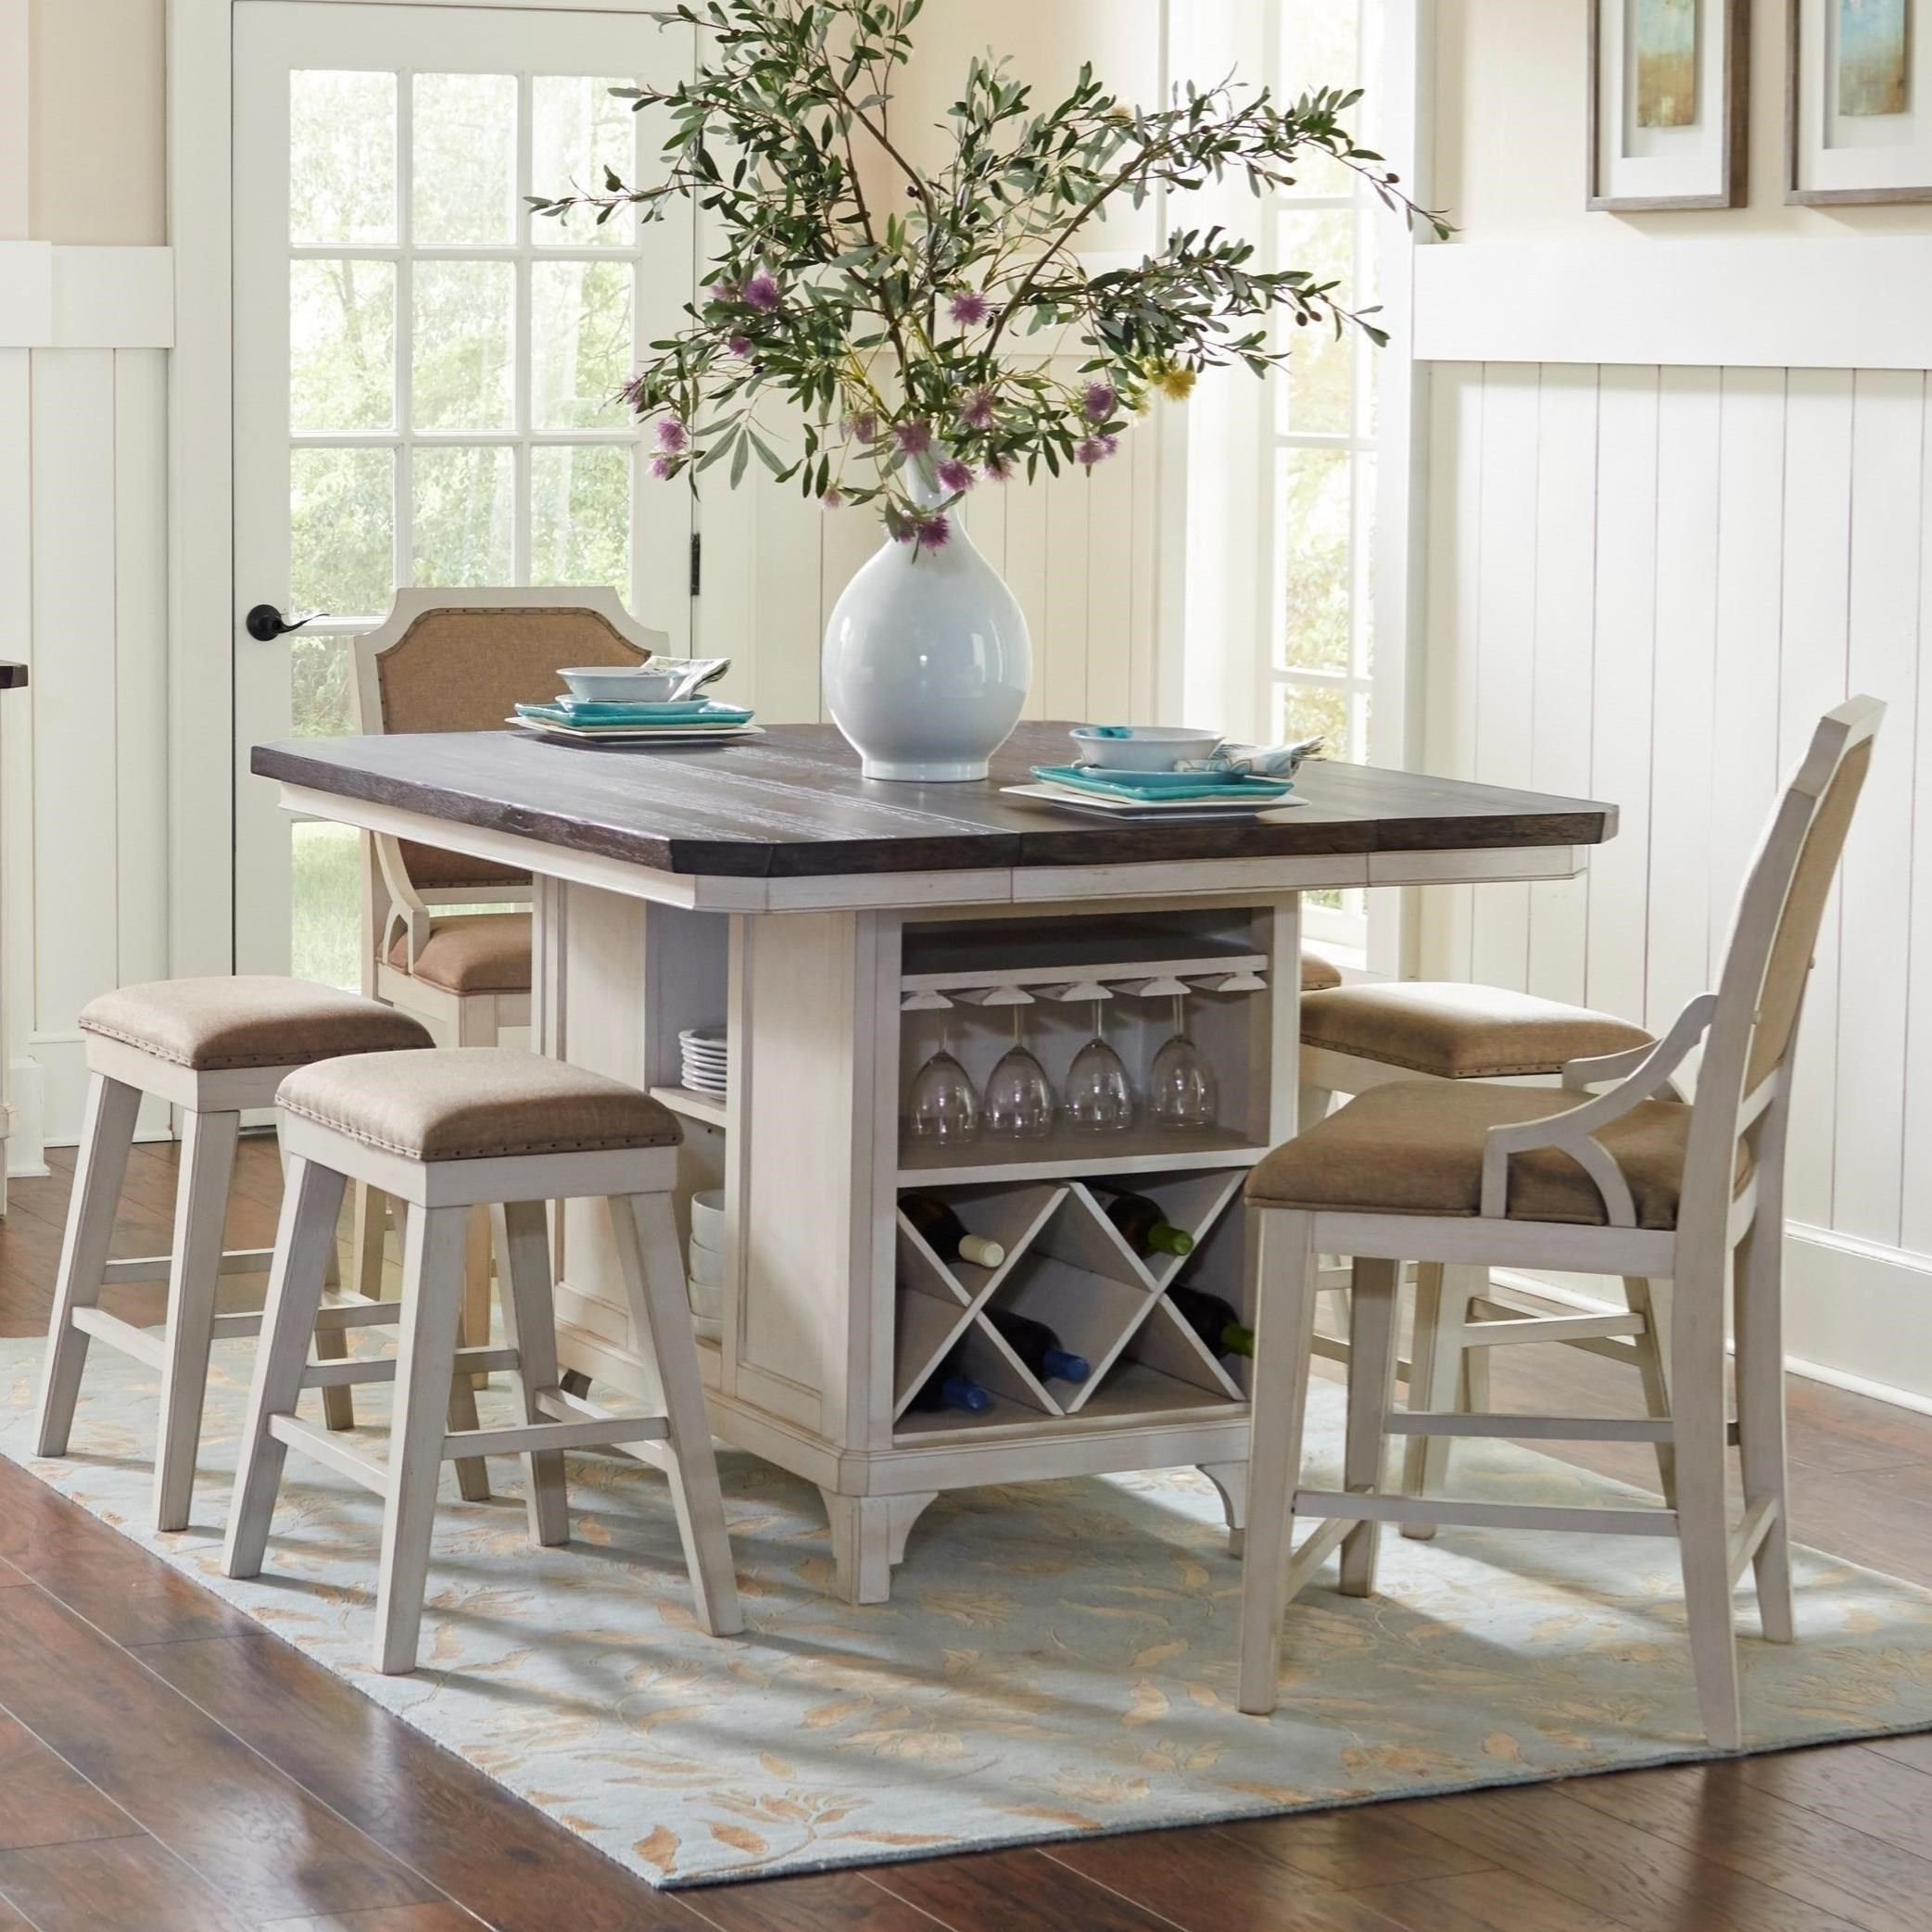 kitchen island table with chairs. Mystic Cay 7-Piece Kitchen Island Table Set By Avalon Furniture With Chairs R